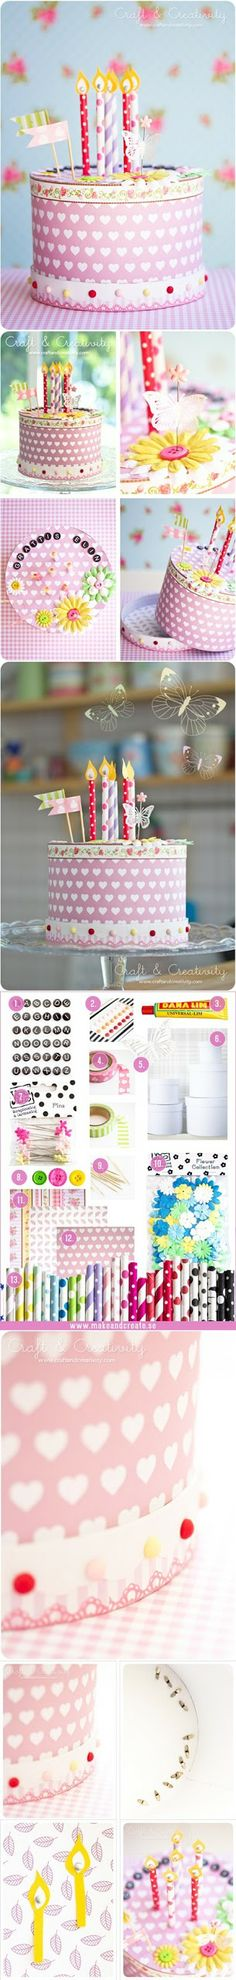 Diy Projects: DIY Washi Tape Paper Cake